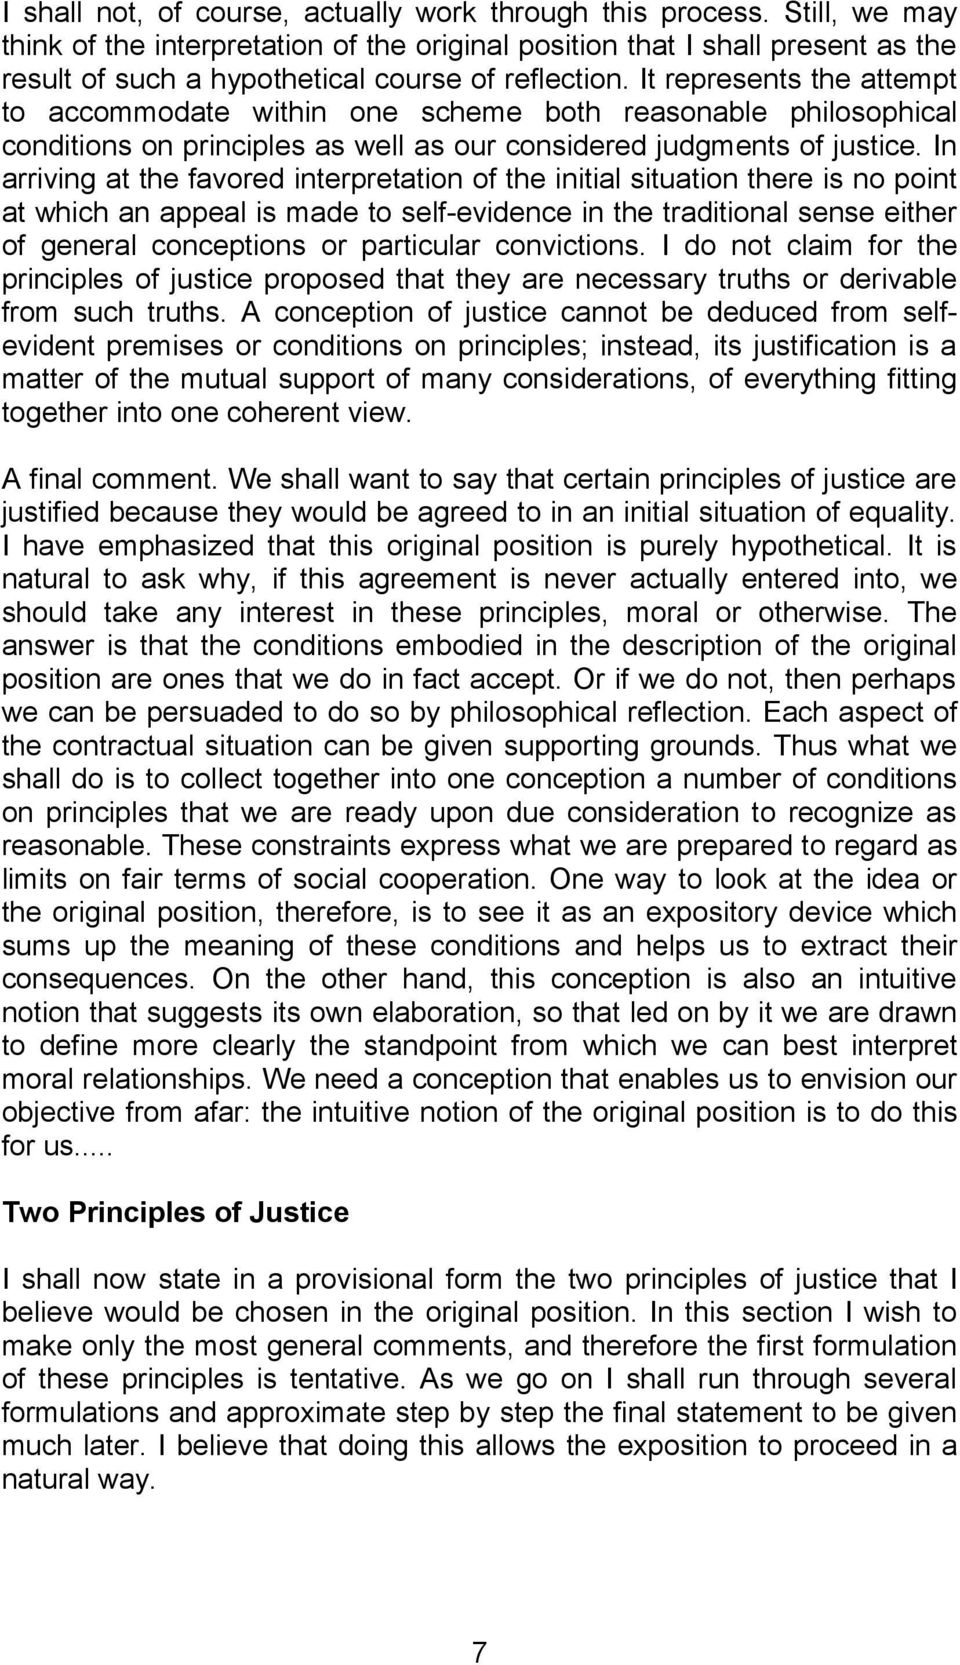 It represents the attempt to accommodate within one scheme both reasonable philosophical conditions on principles as well as our considered judgments of justice.